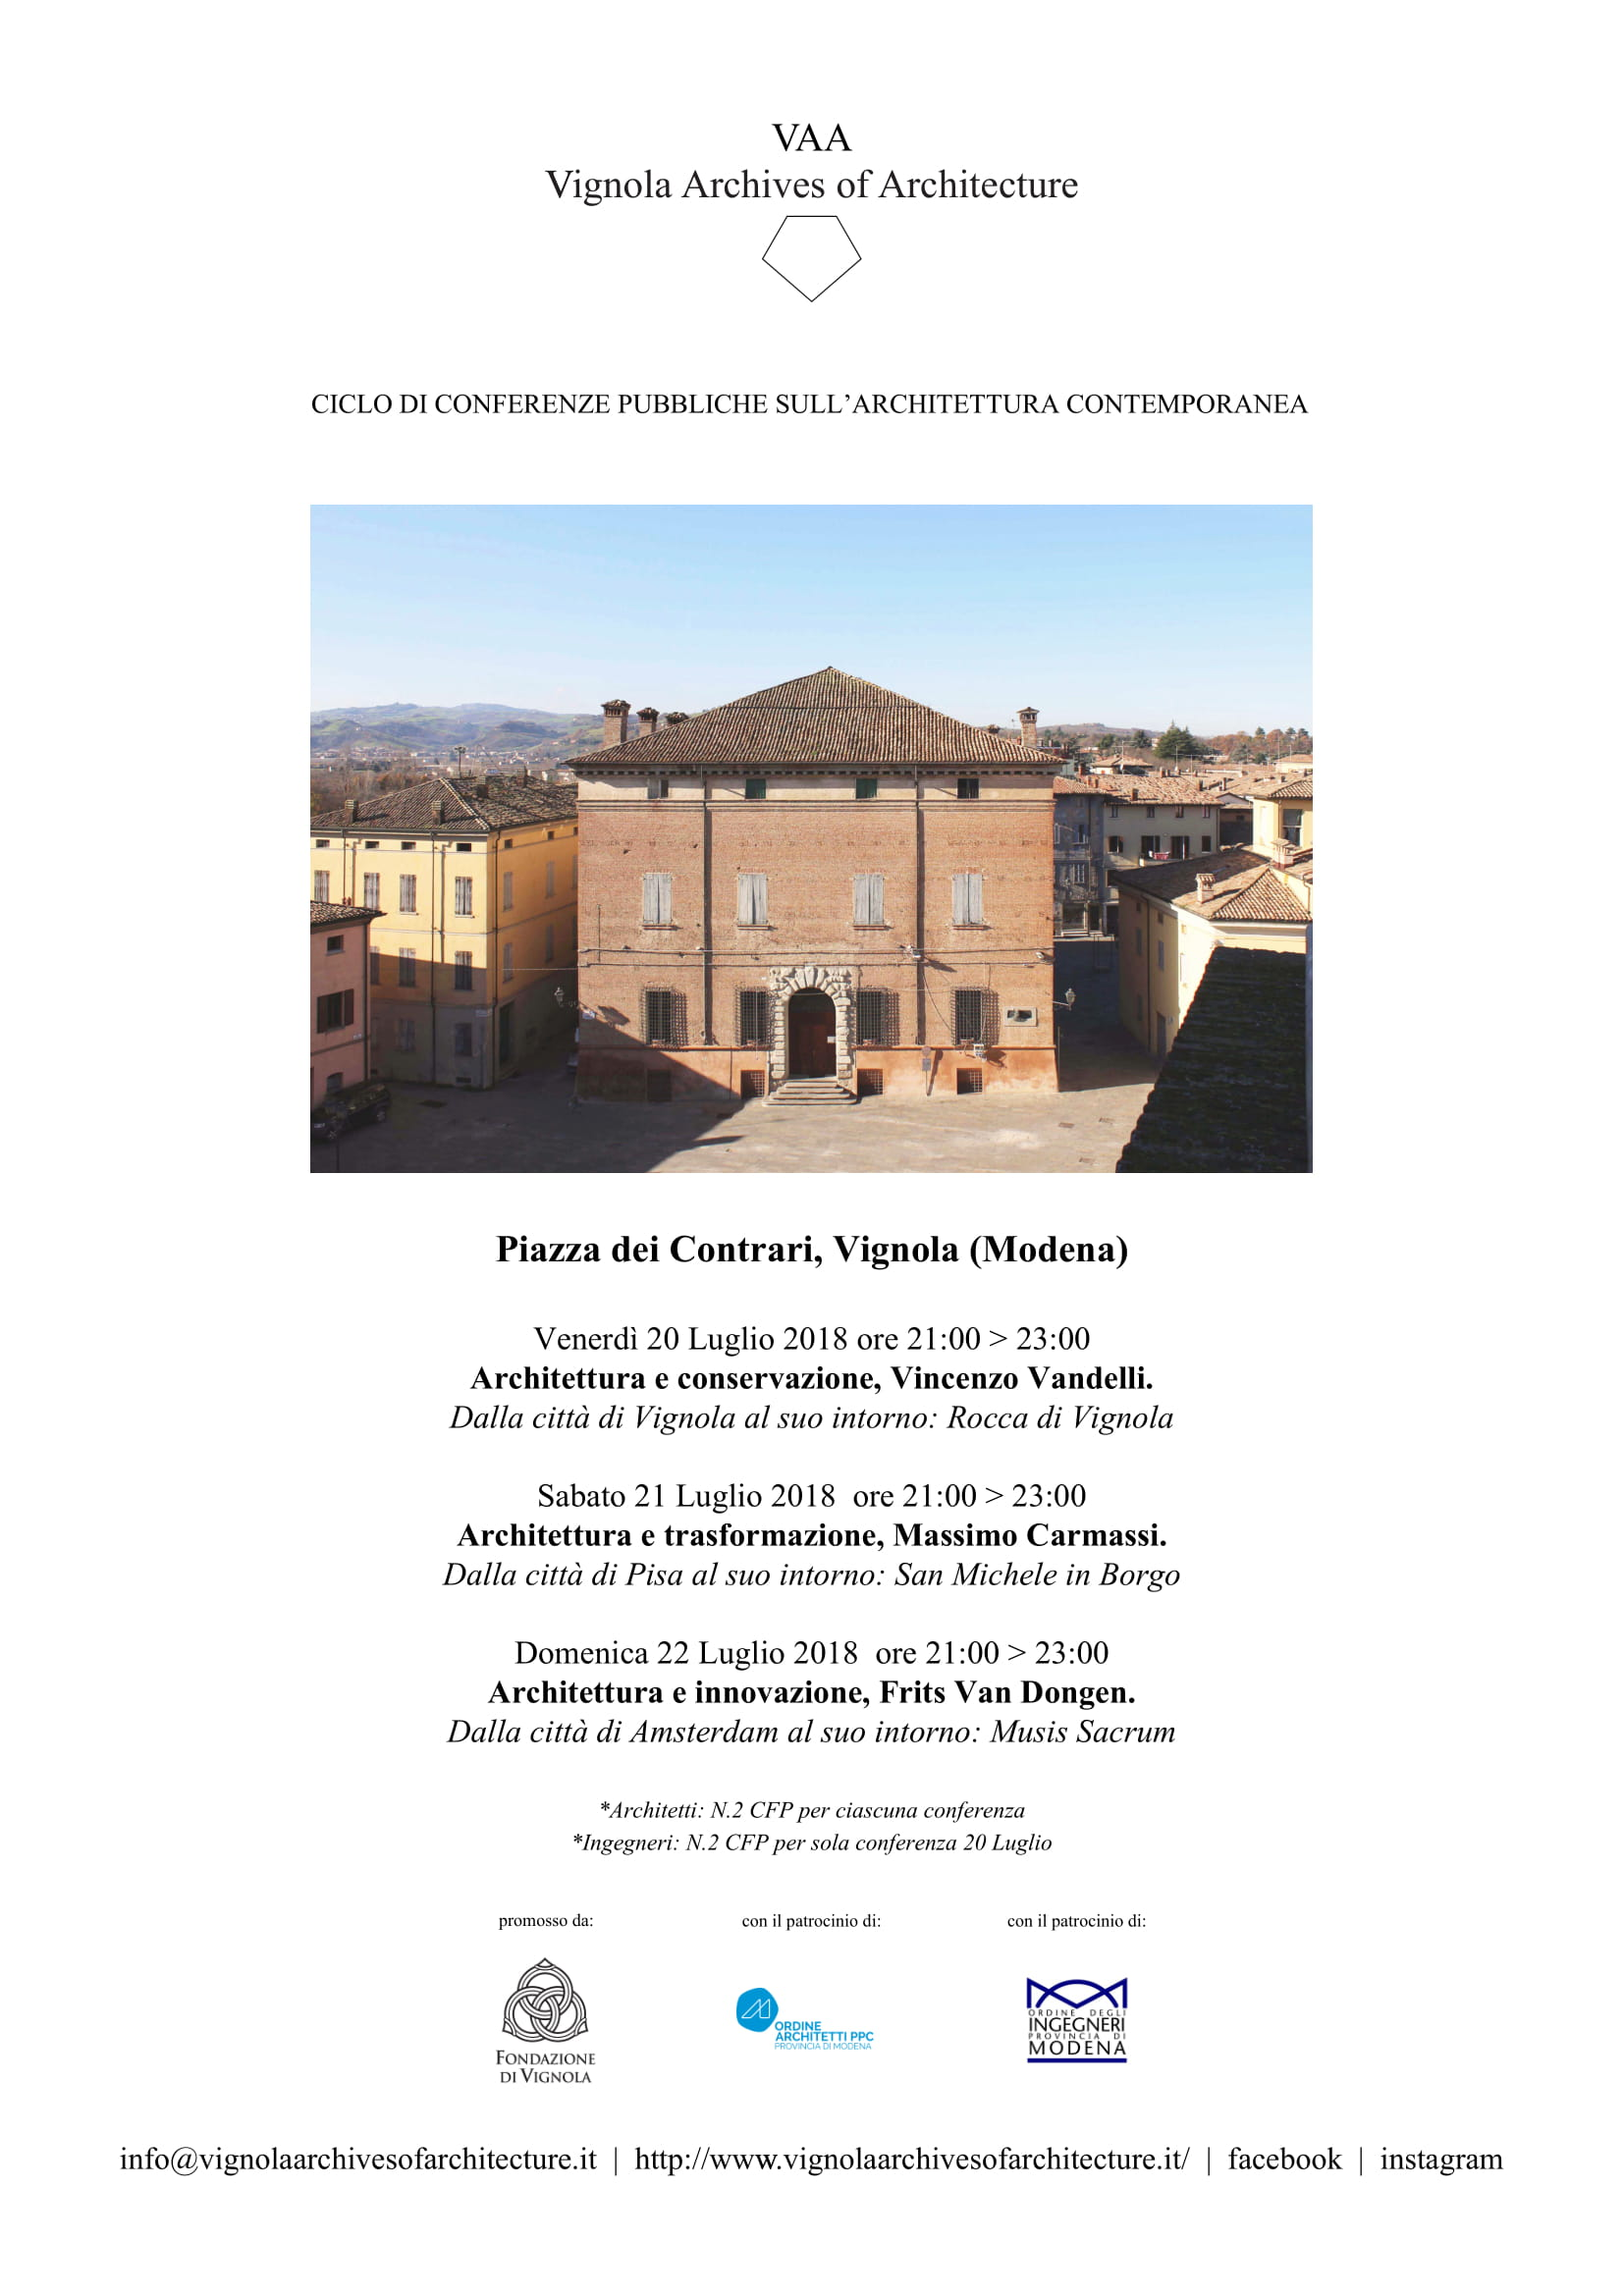 Vignola Archives of Architecture - July 2018